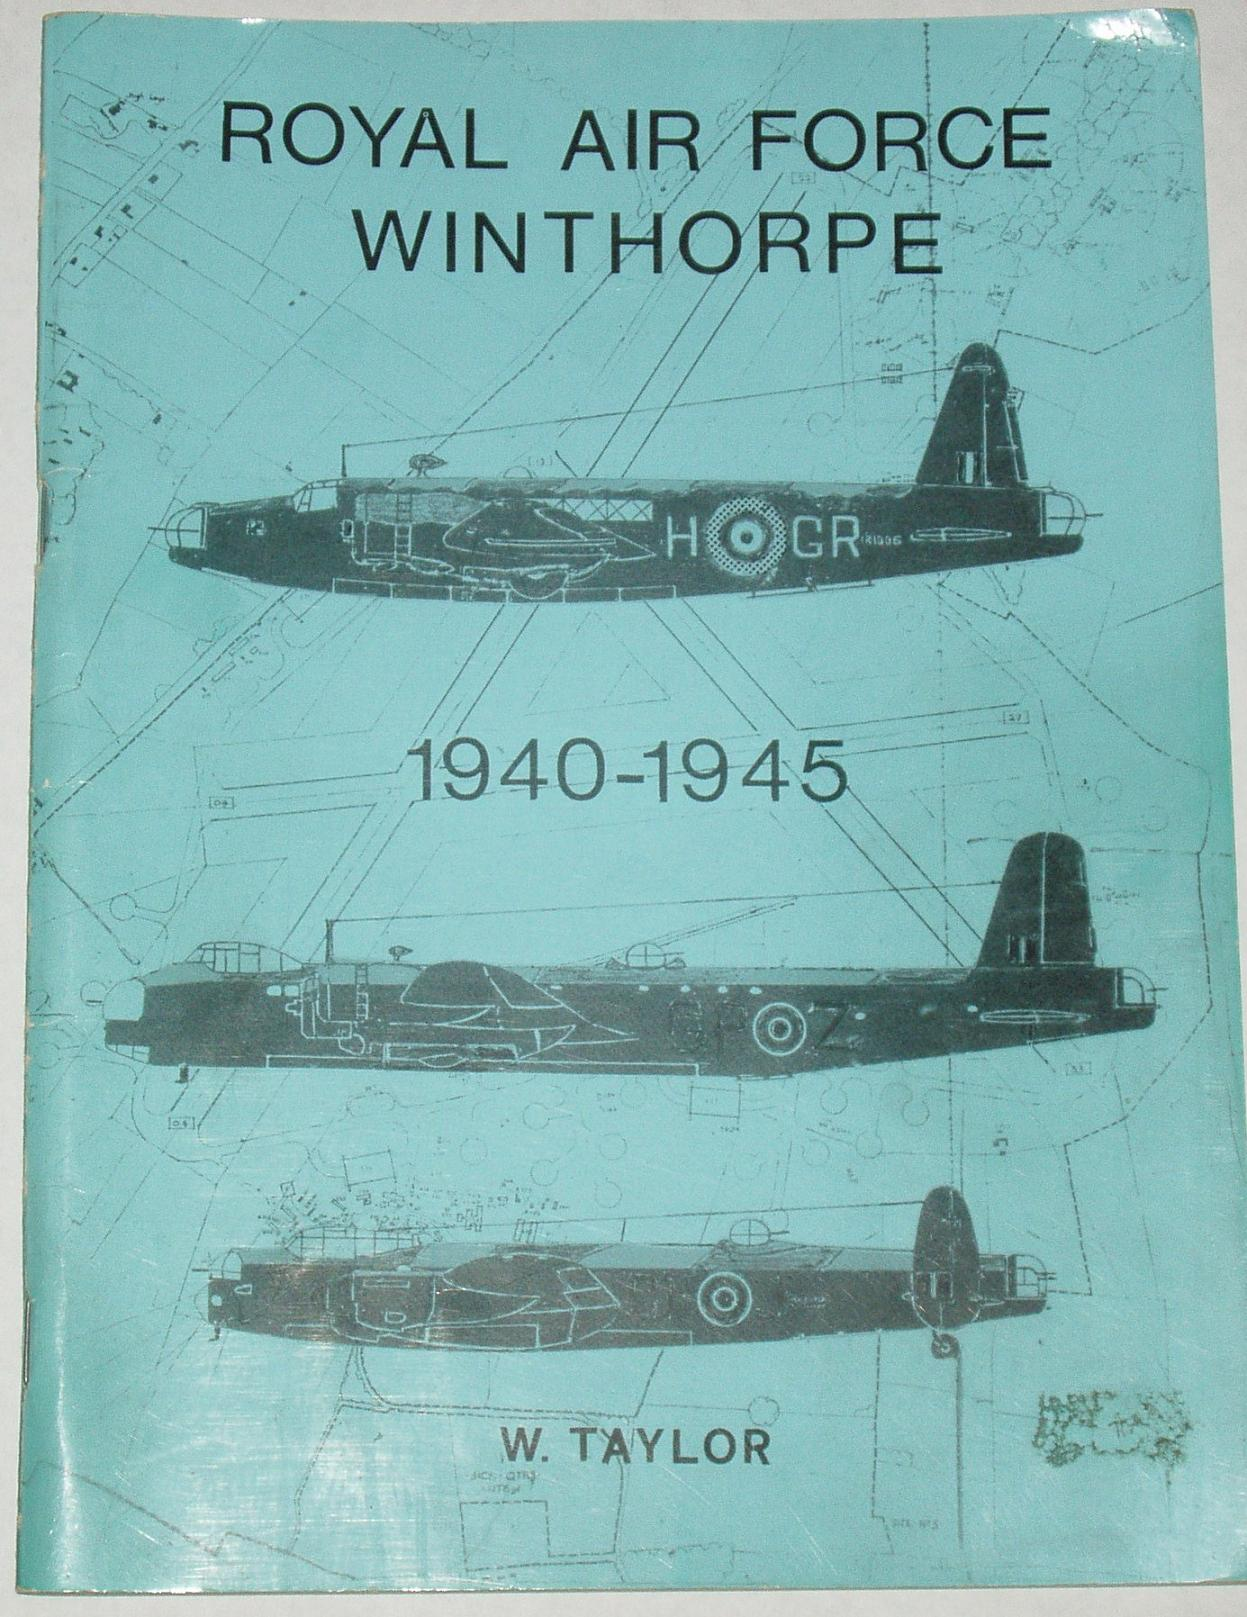 Royal Air Force Winthorpe, 1940-1945, by W  Taylor